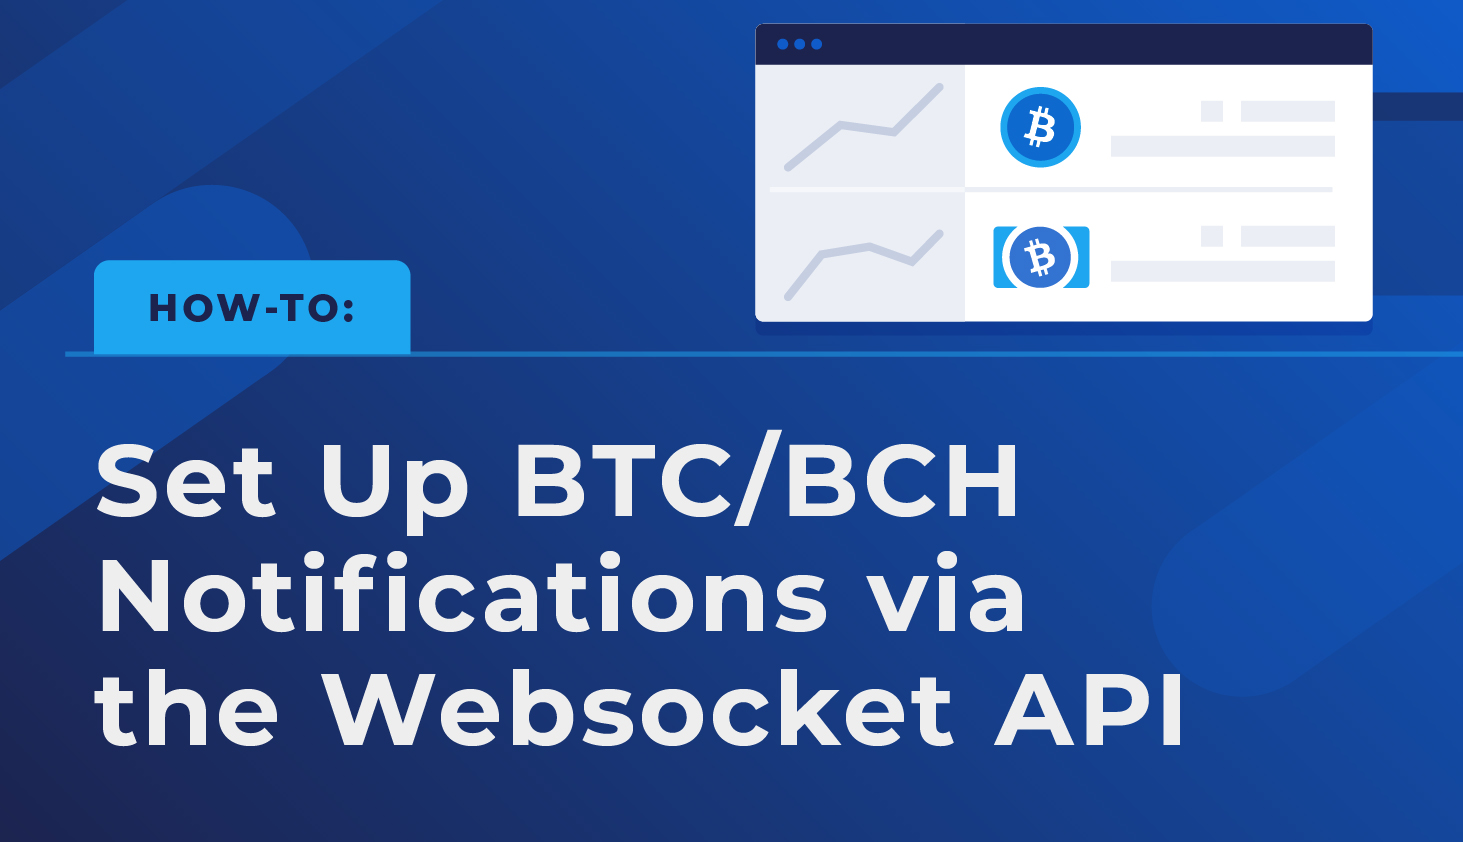 How-To: Use the Websocket API to Set Up Bitcoin / Bitcoin Cash Notifications